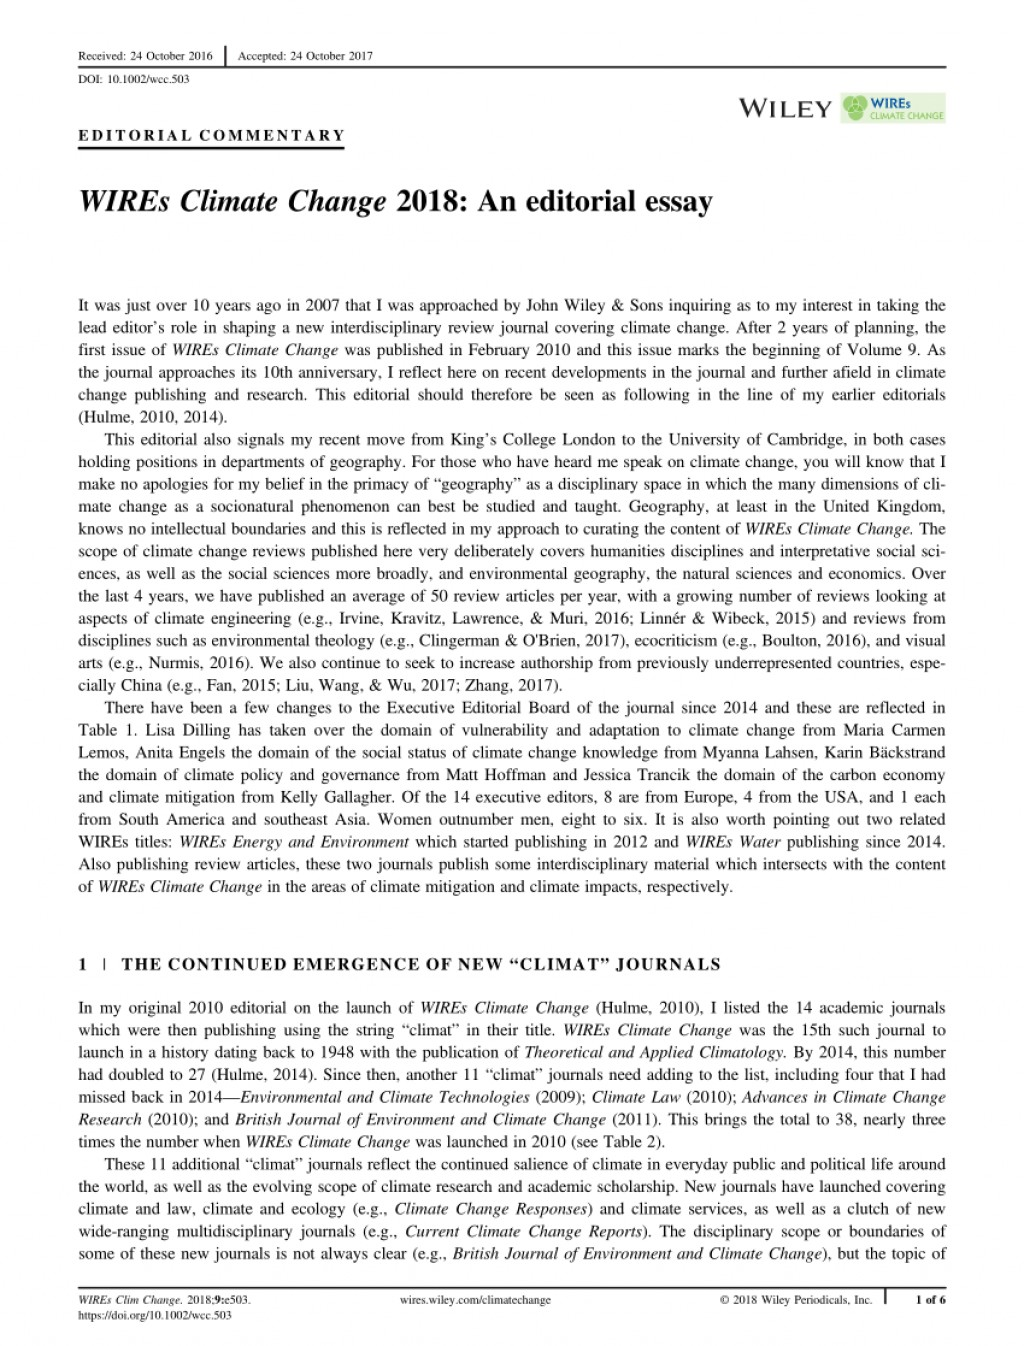 005 Essay Example Climate Change Awesome High School In English 150 Words Kenya Art And Competition 2018 Large